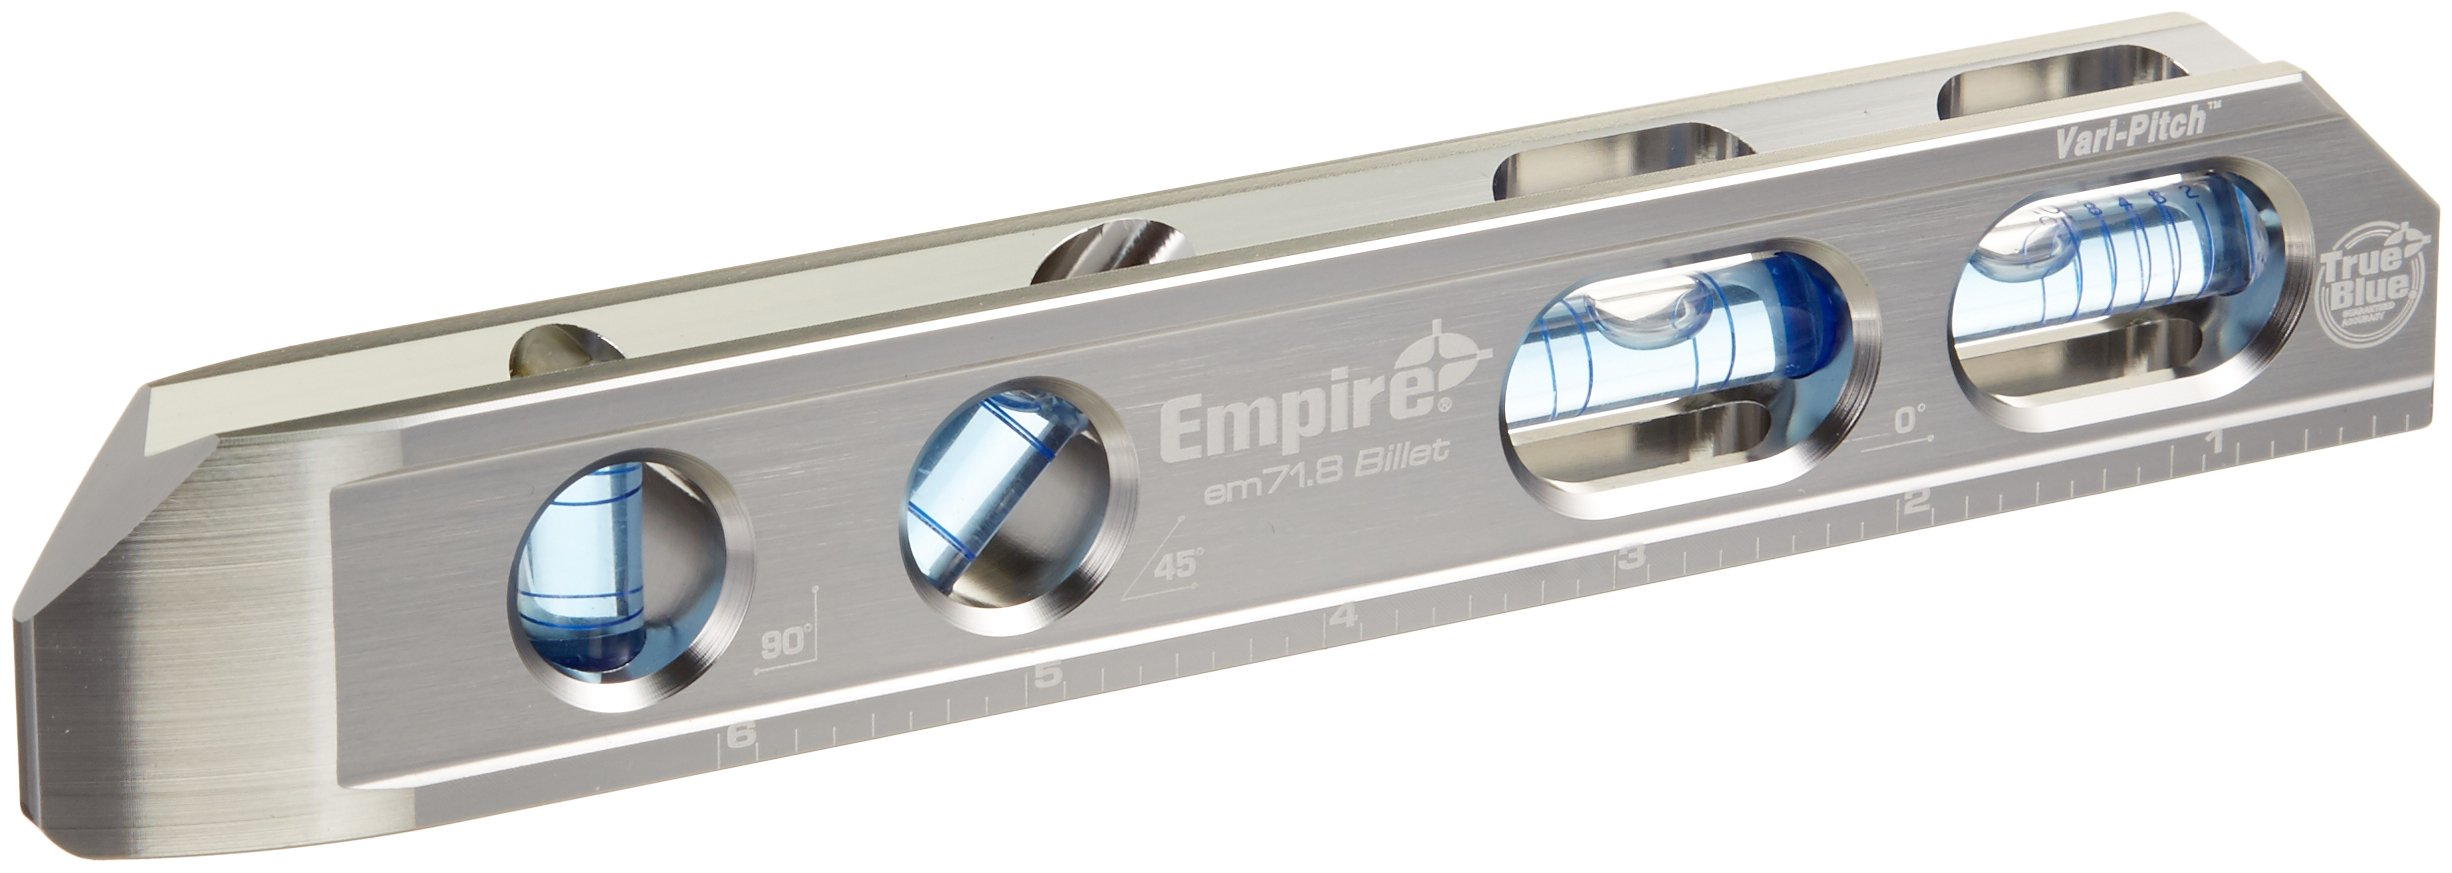 Empire EM71.8 Professional True Blue Magnetic Box Level, 8''